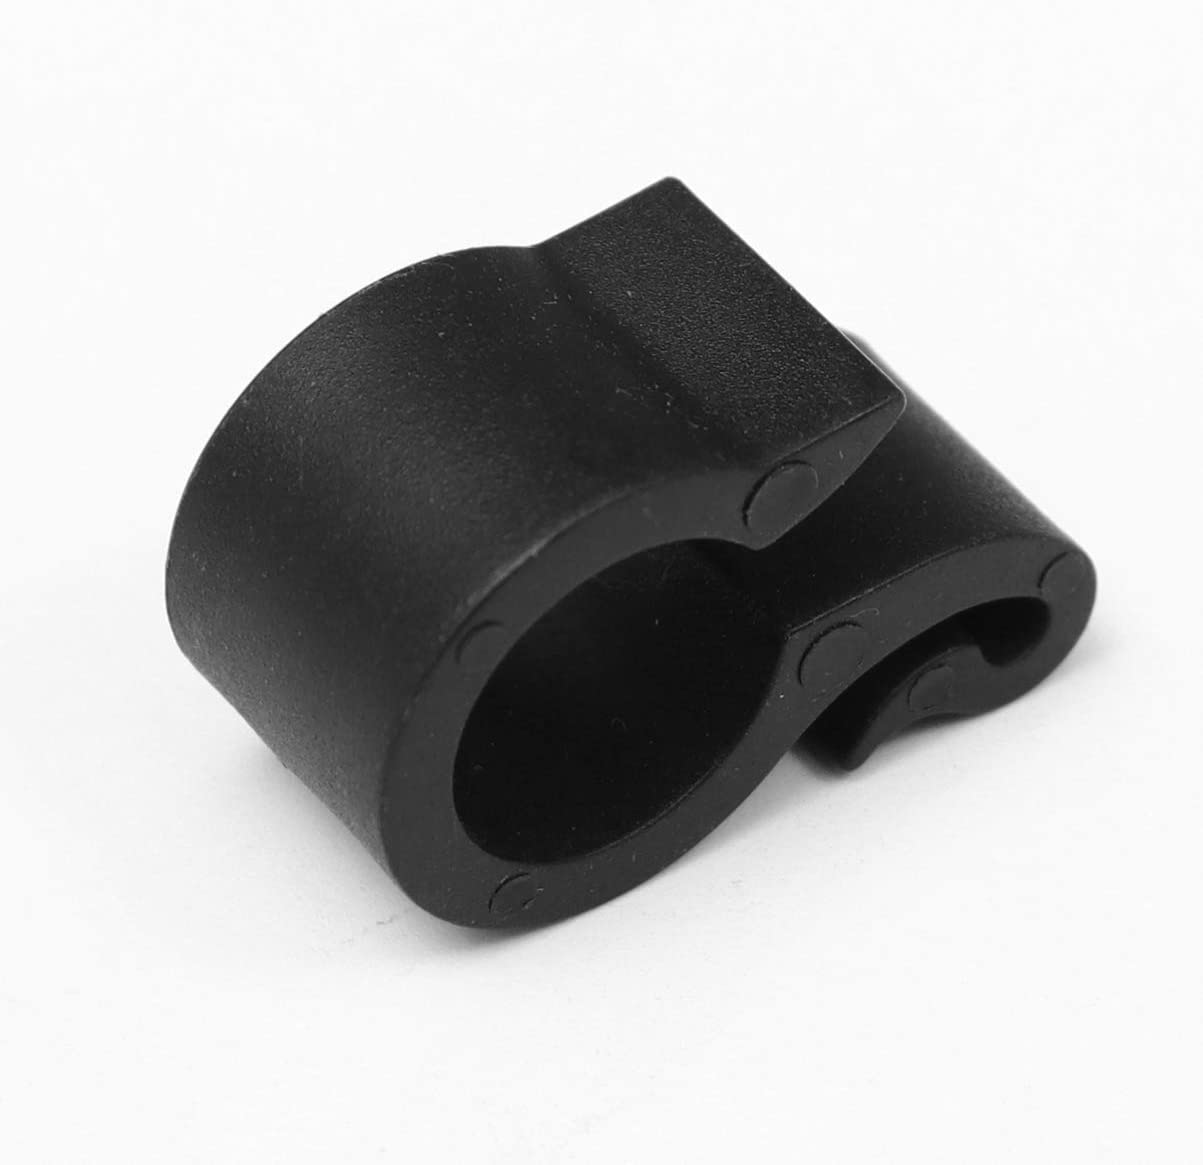 Hemoton Water Pipe Clamp Clip Hose Attachment Clasp Replacement Pipe Fastener for Garden Hose Tube Irrigation Accessories 50pcs Black